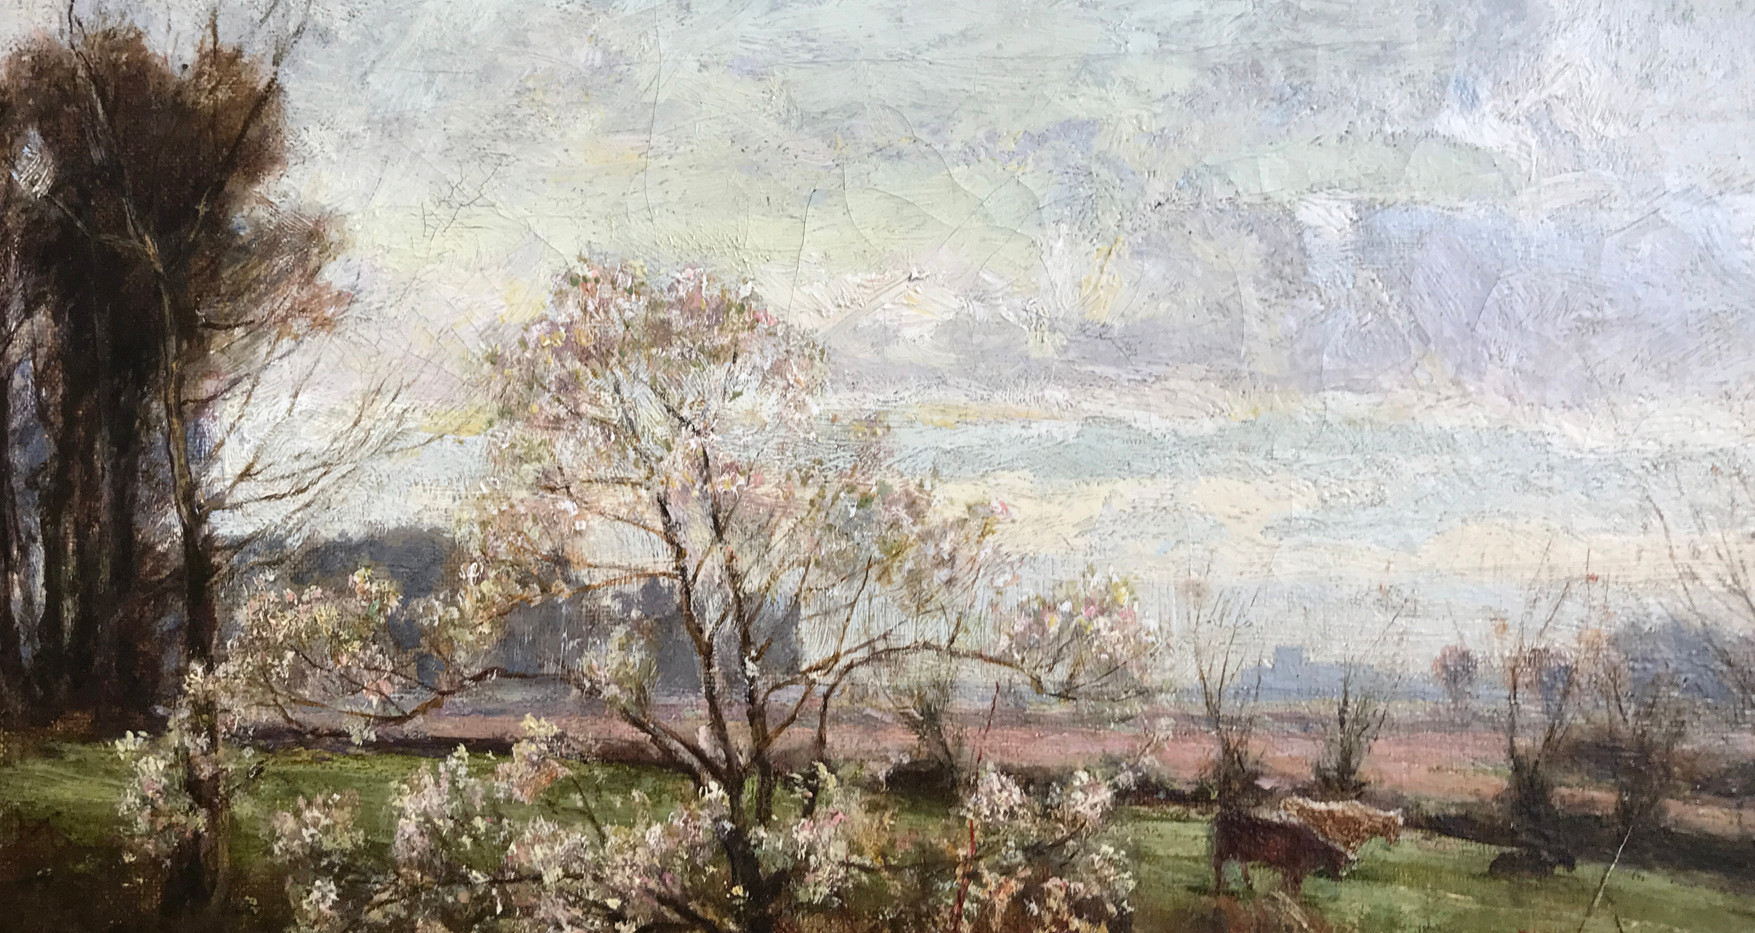 George Gray, Oil on Canvas